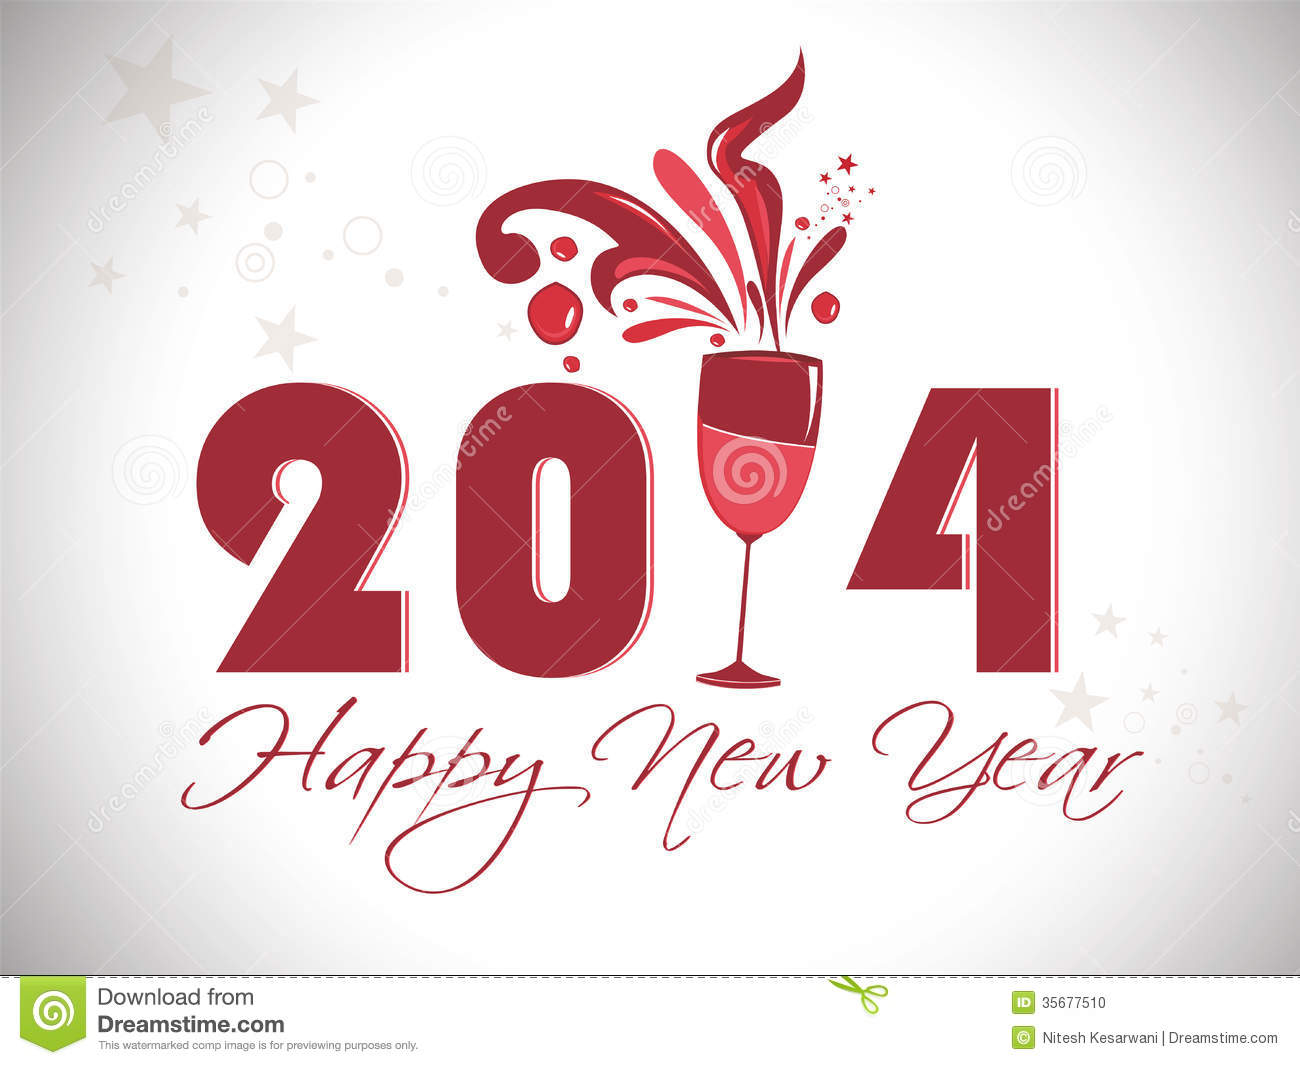 creative happy new year 2014 design with champagne glasses celebration party poster banner or